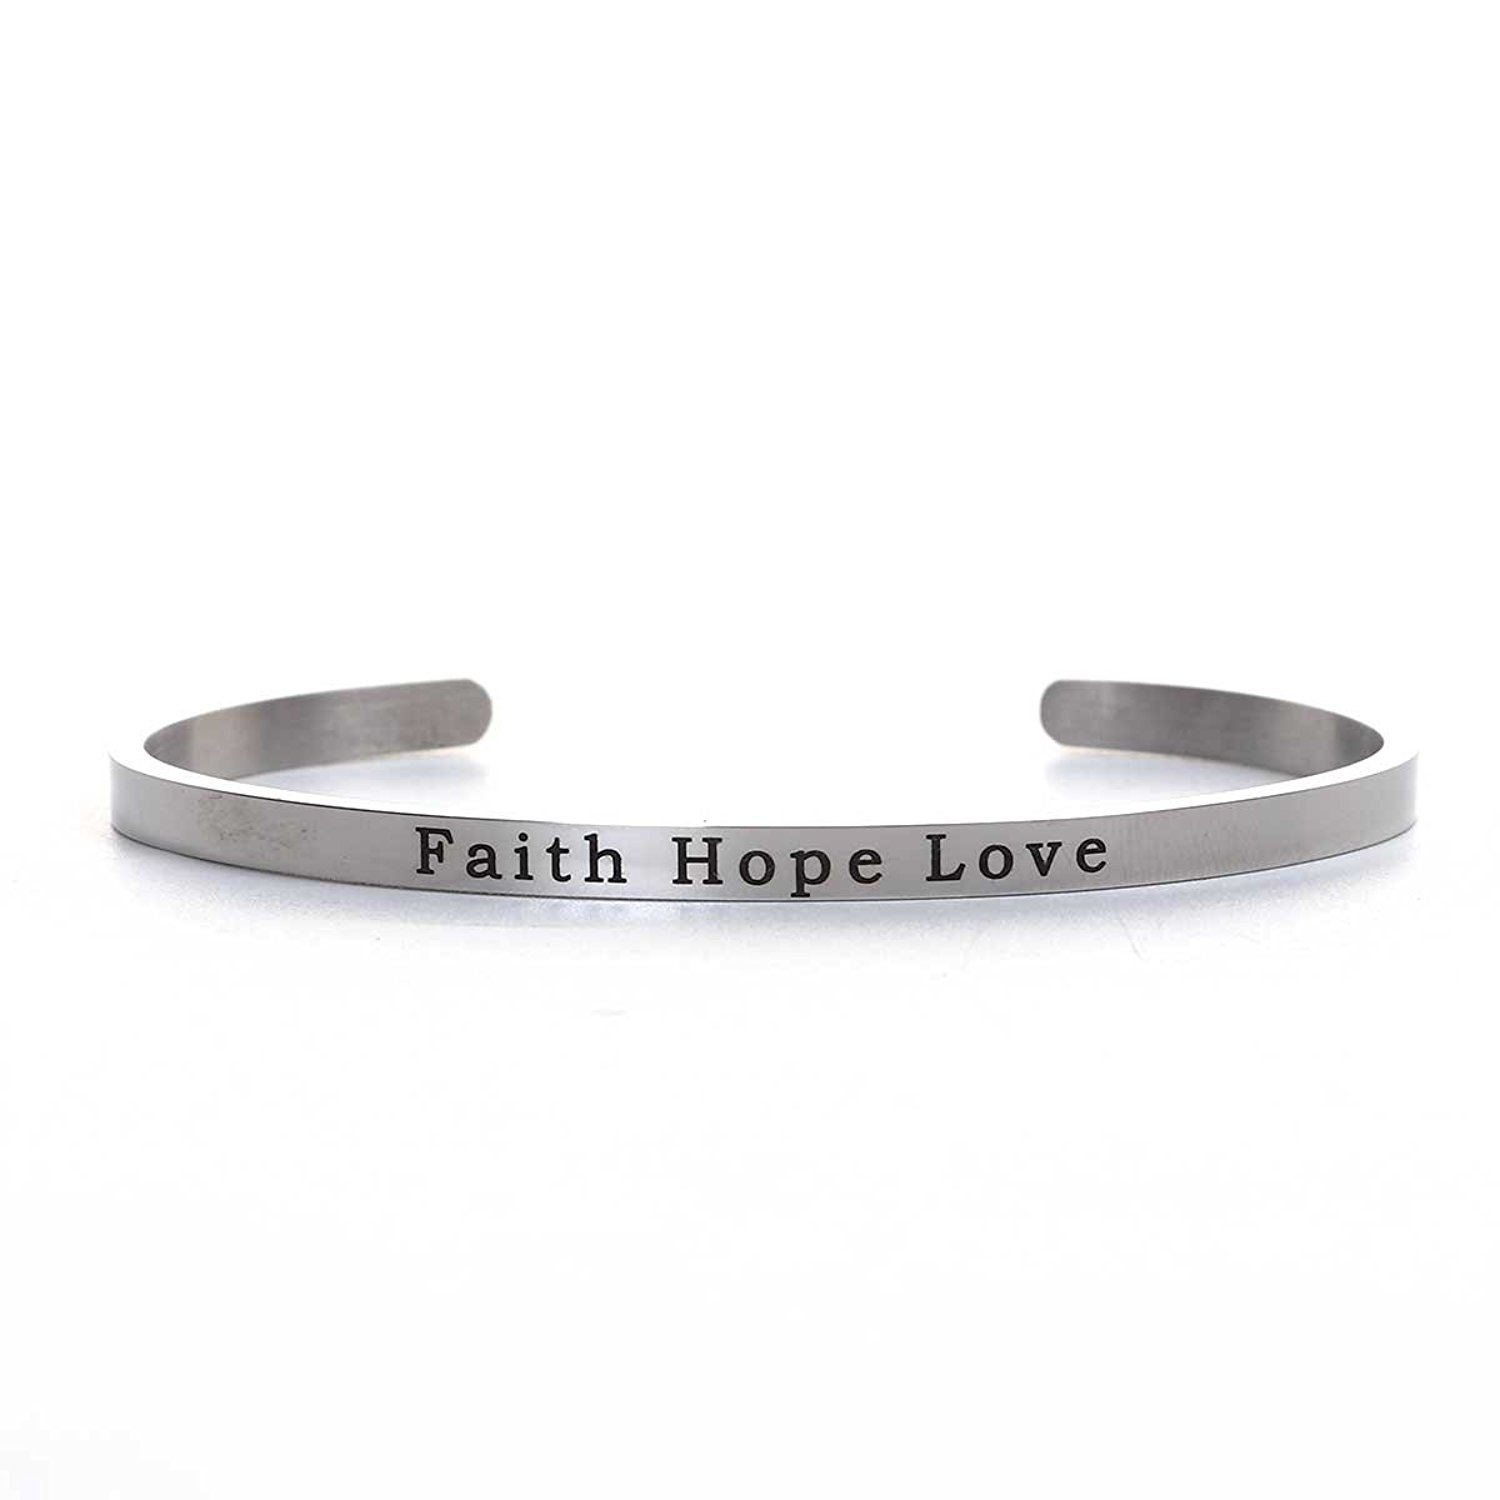 SEXY SPARKLES Stainless Steel Faith Hope Love Positive Quotes Energy Open Cuff Bangle Bracelet